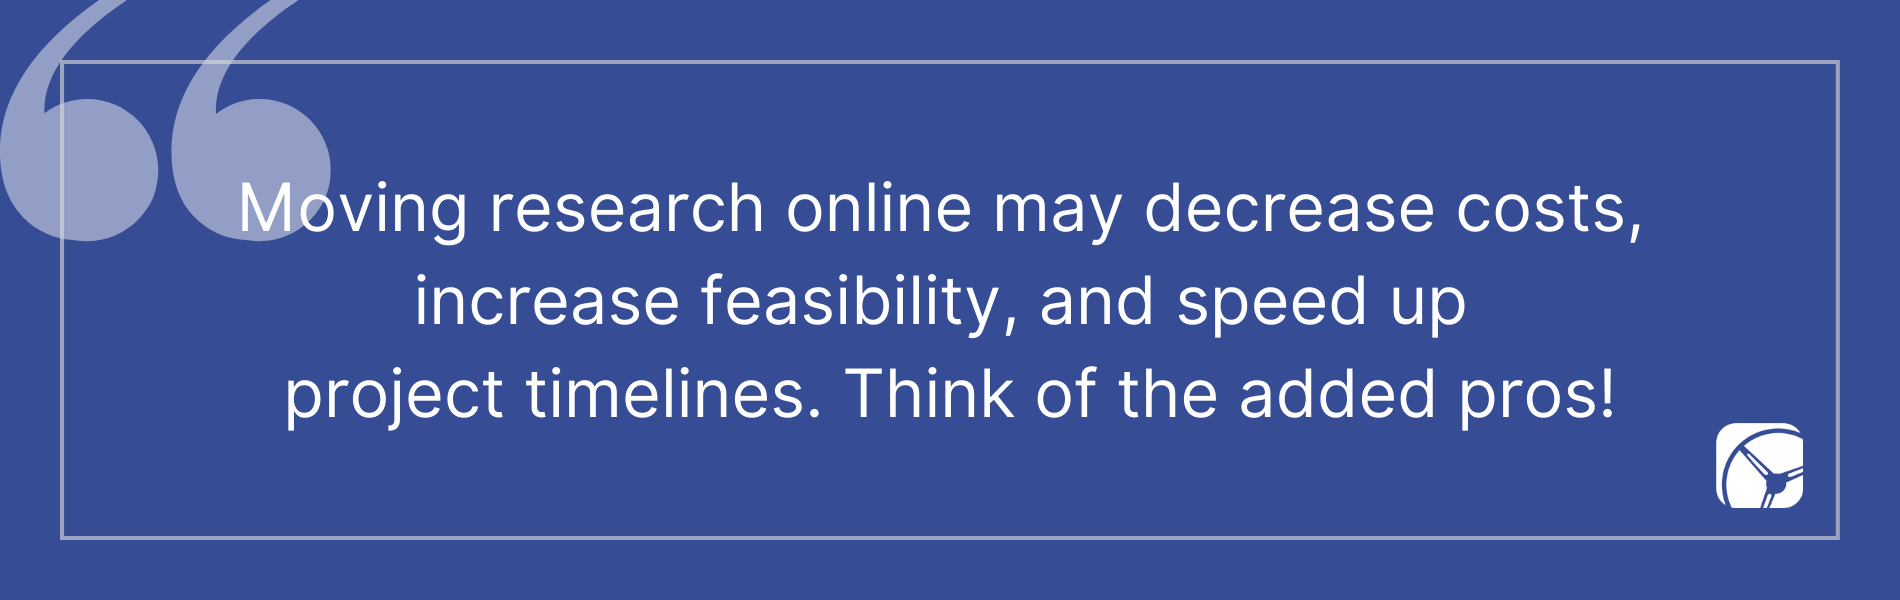 Moving research online may decrease costs,  increase feasibility, and speed up  project timelines. Think of the added pros!